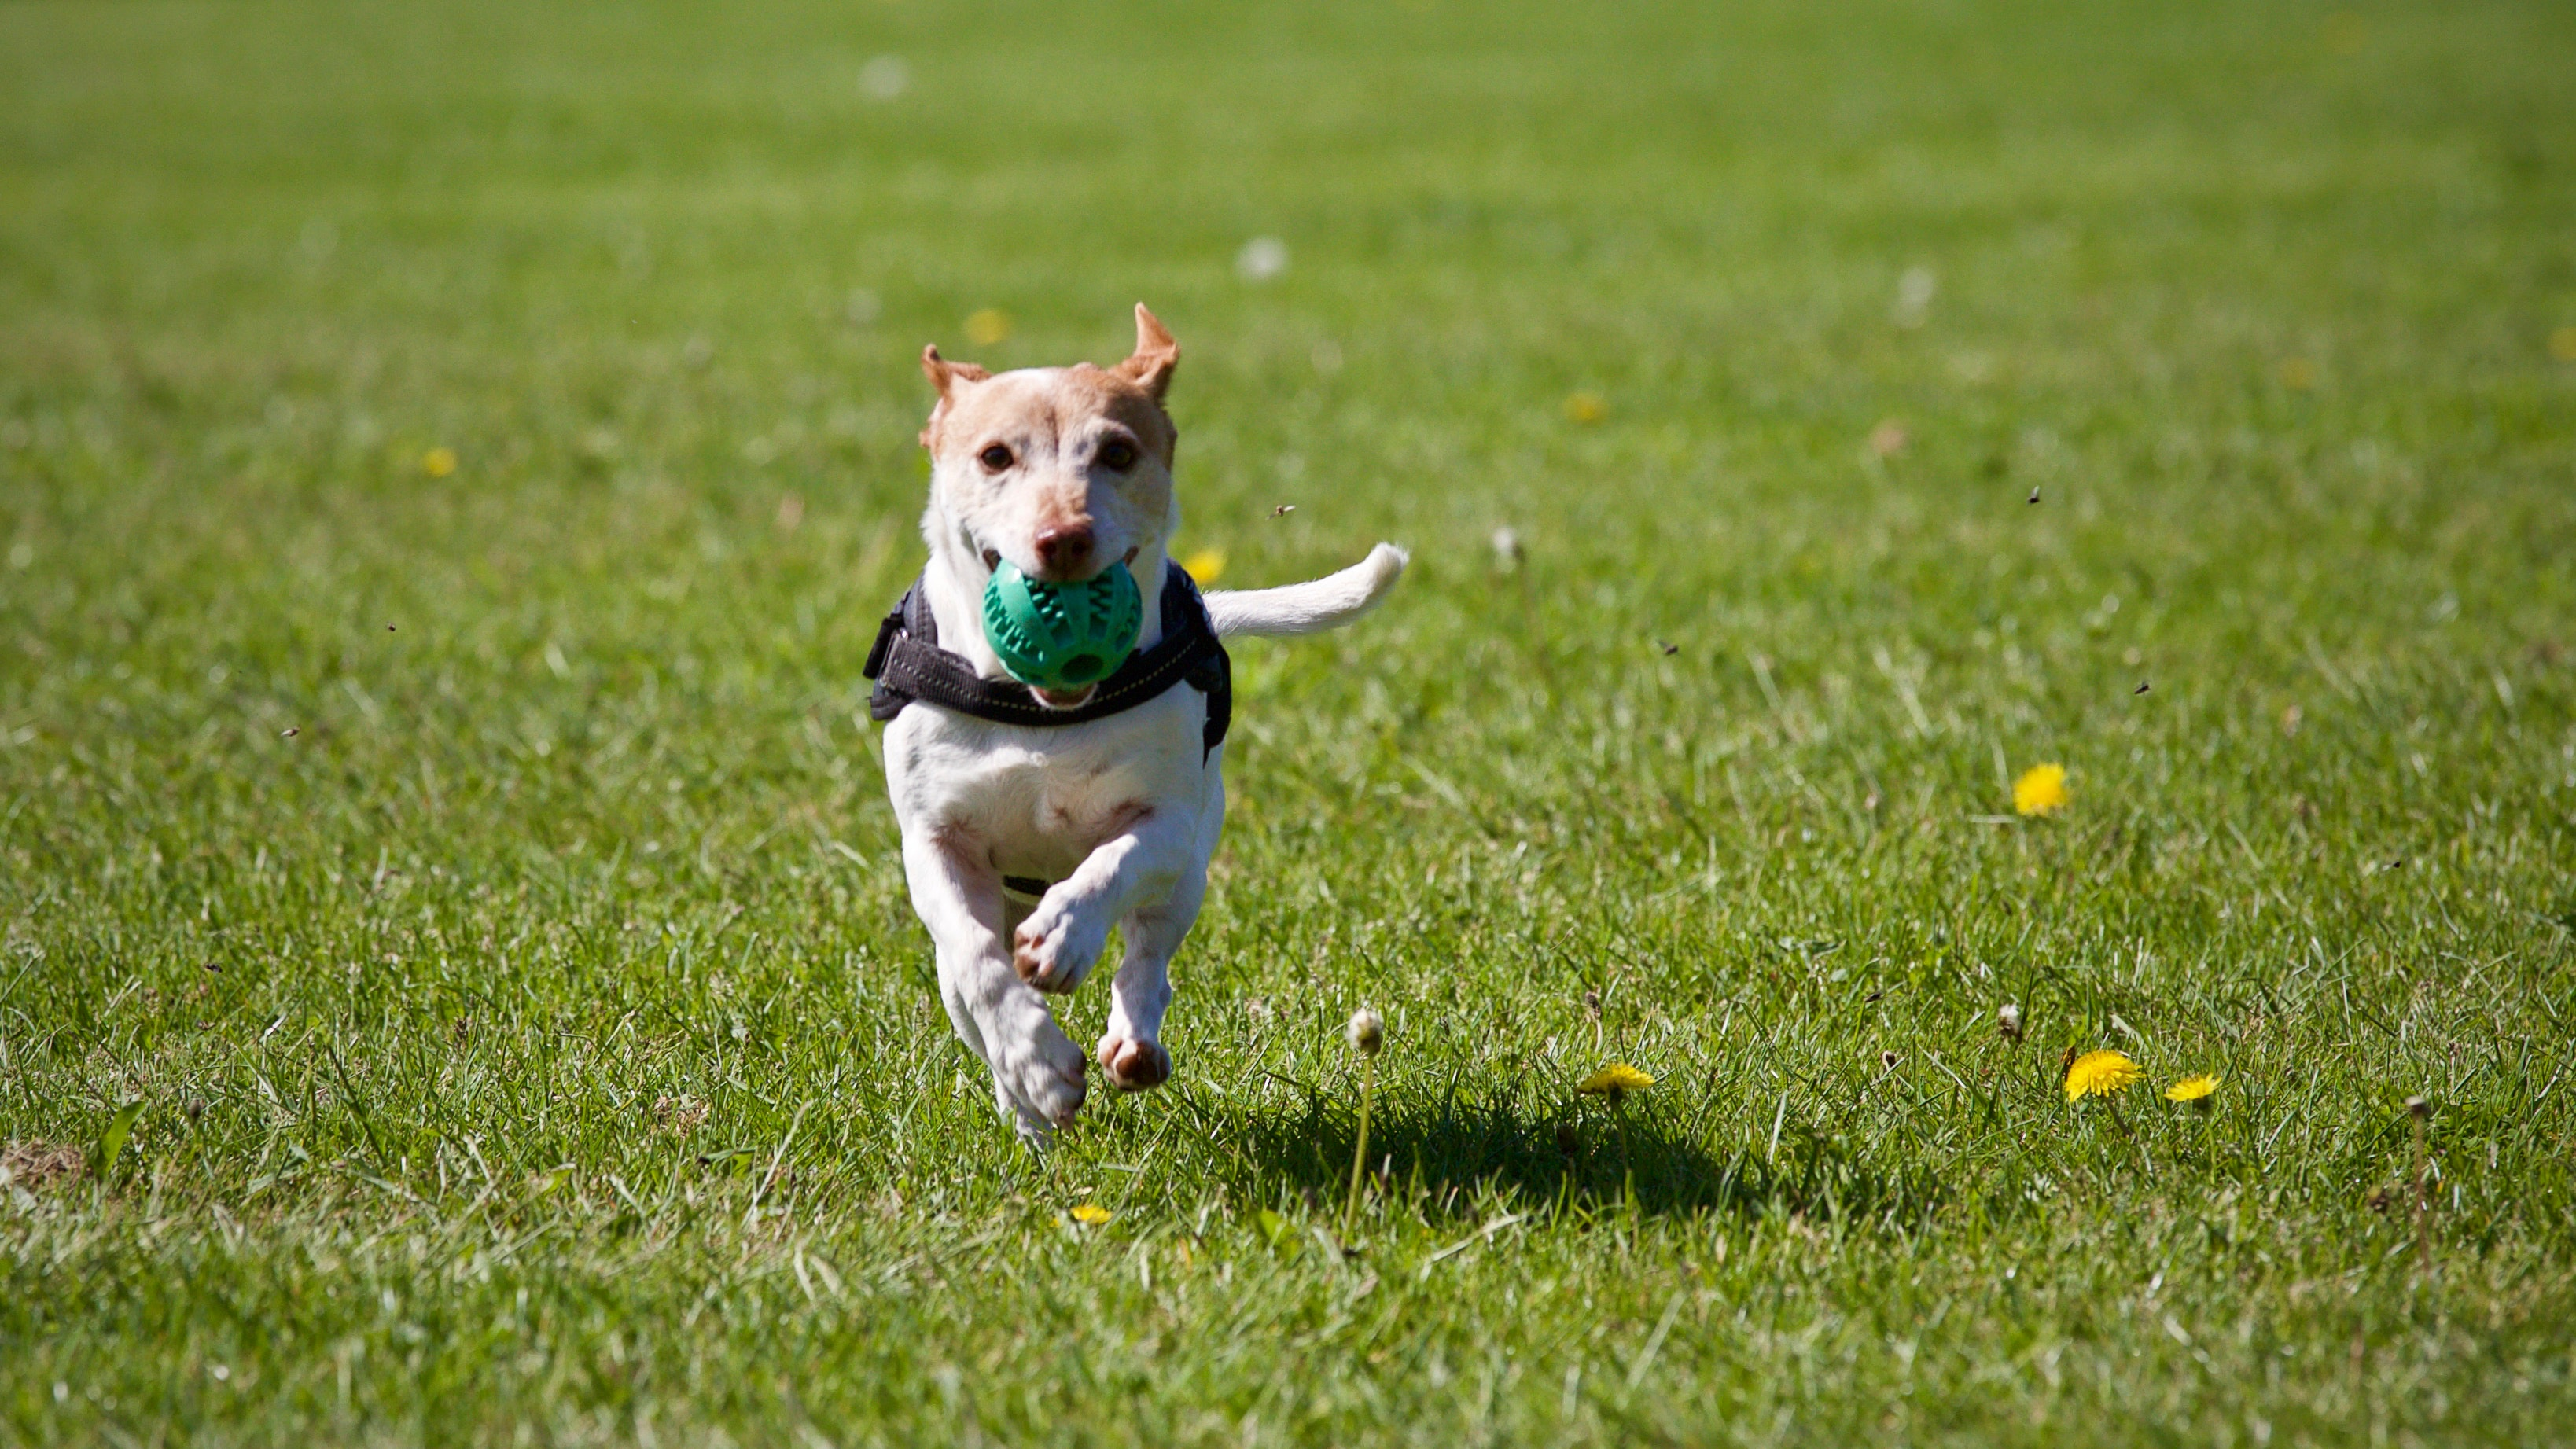 Best Weighted Vest for Dogs 2018 – The Buyer's Guide